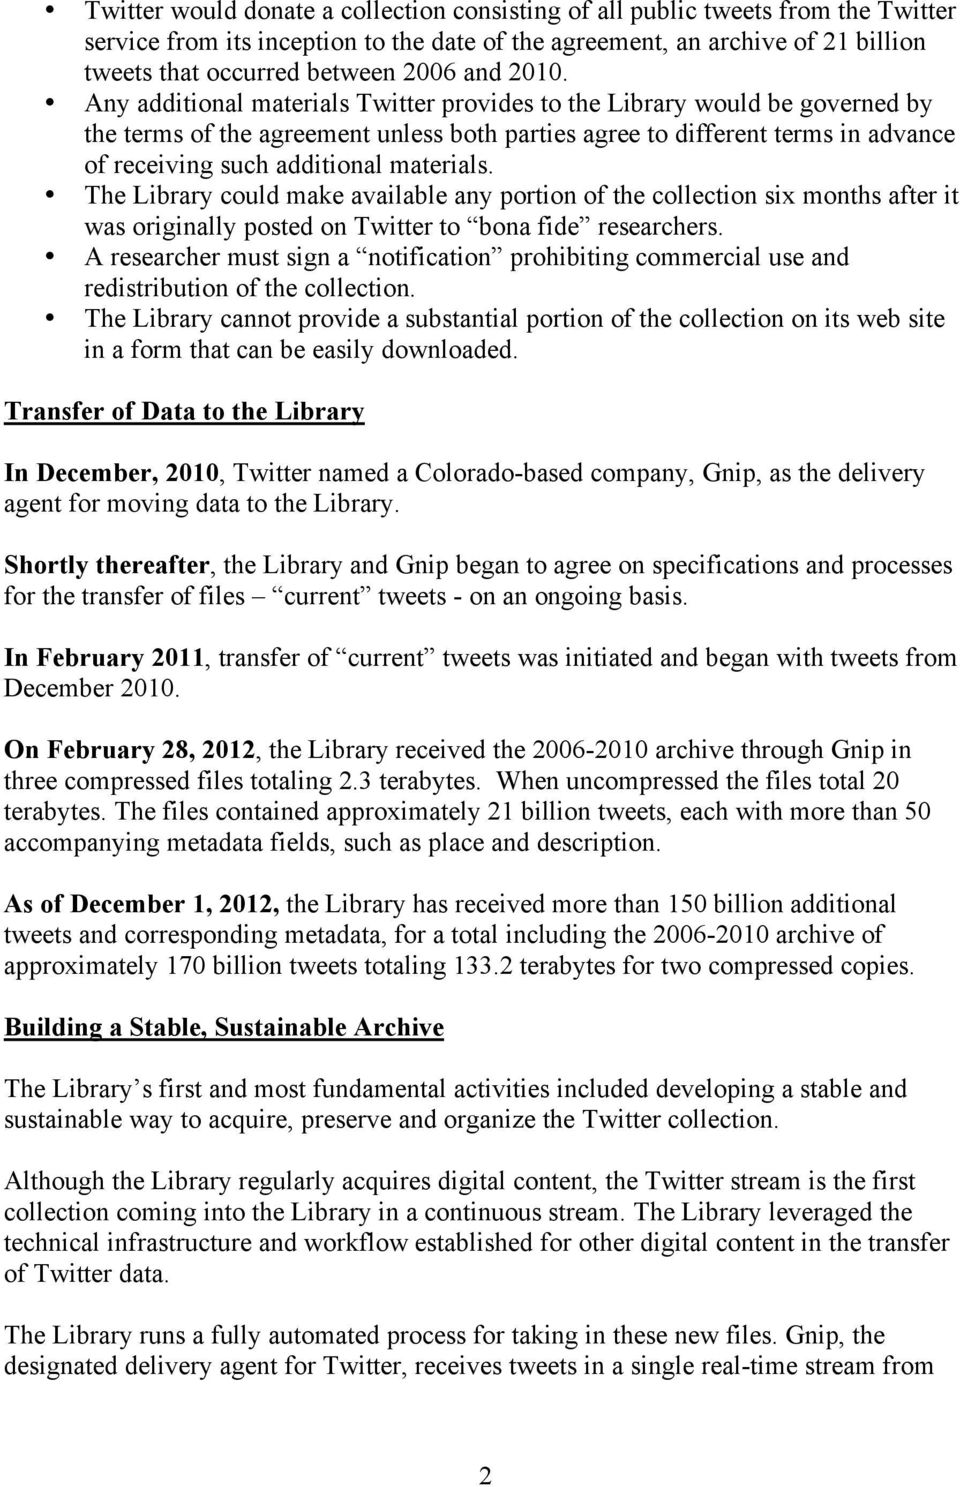 Any additional materials Twitter provides to the Library would be governed by the terms of the agreement unless both parties agree to different terms in advance of receiving such additional materials.